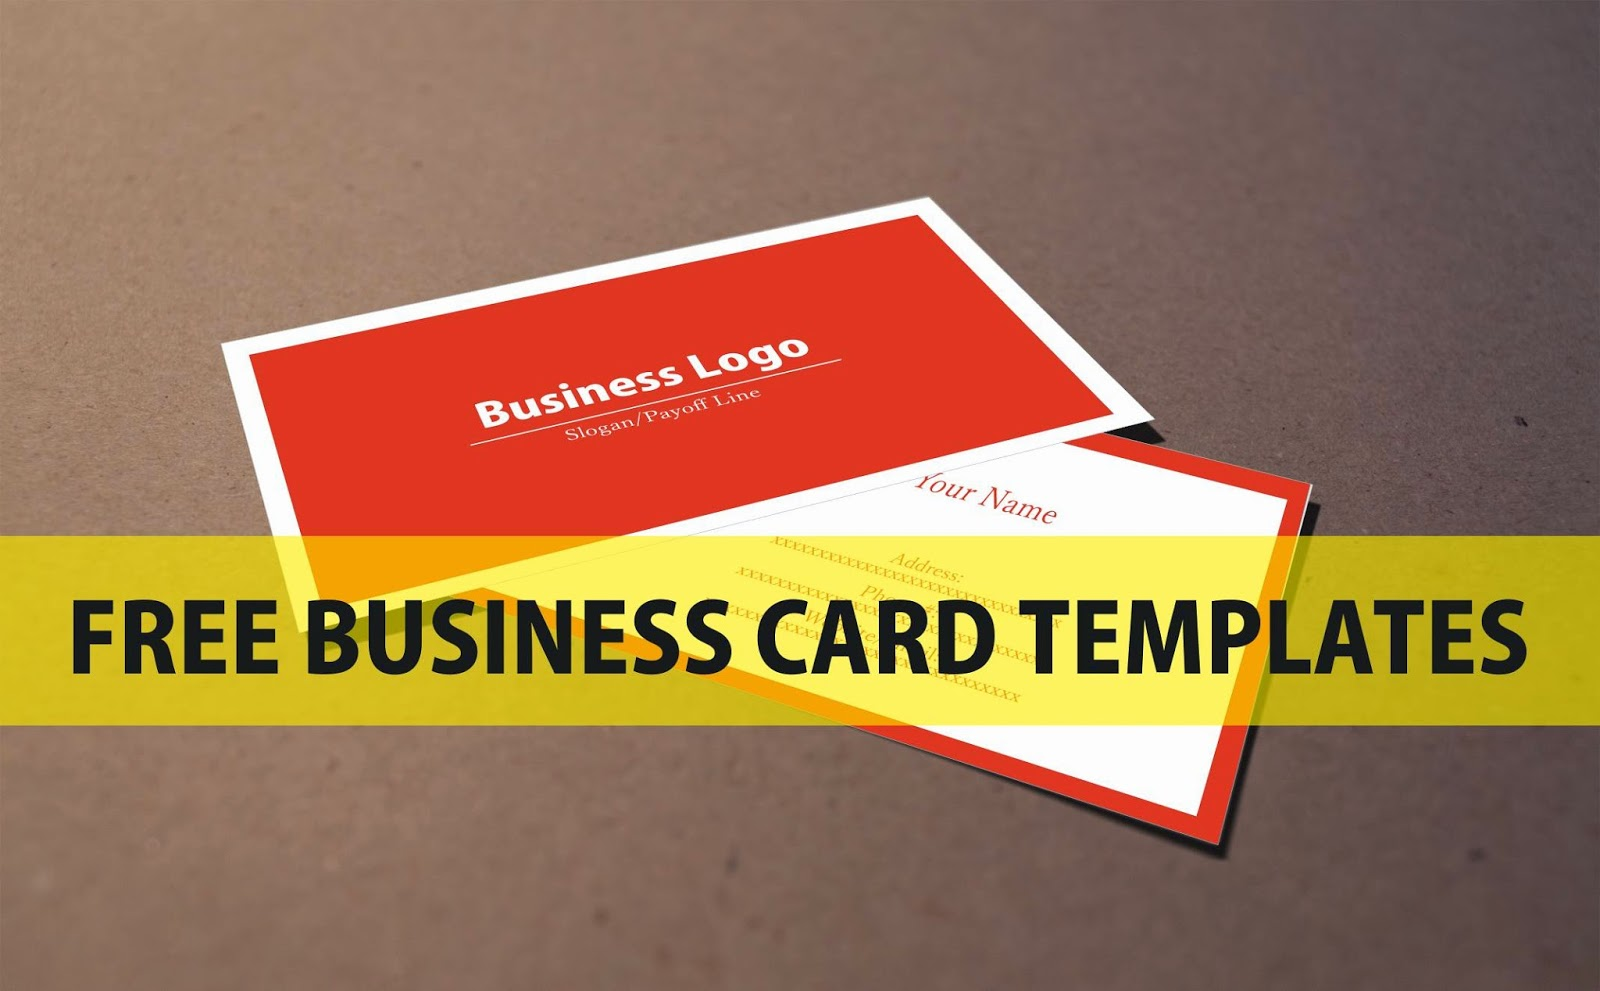 Free business card template download coreldraw file a graphic free business card template download coreldraw file flashek Choice Image